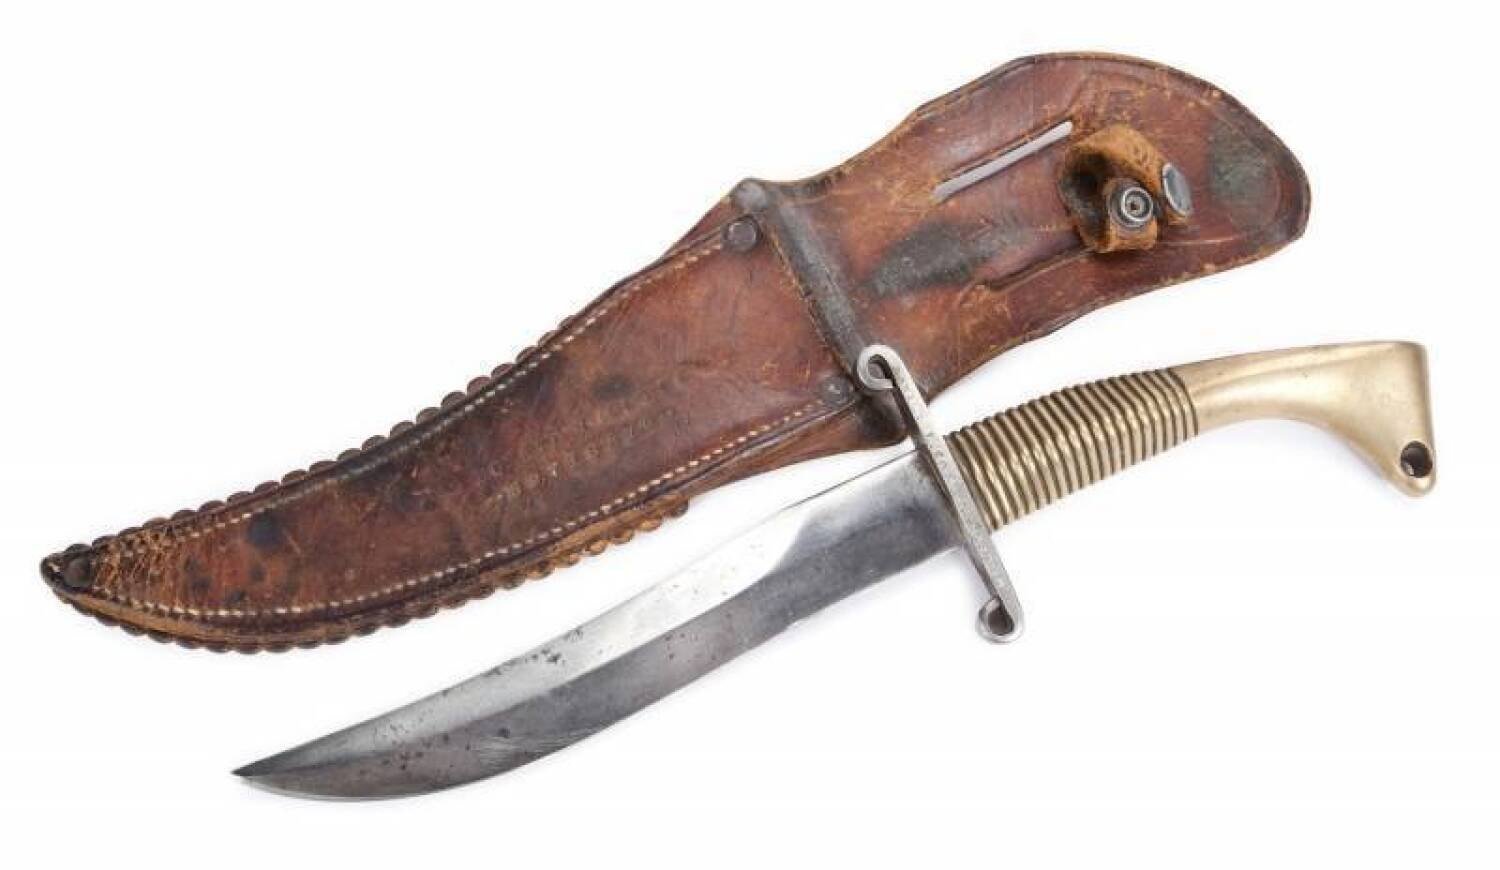 FLOYD NICHOLS WORLD WAR II KNIFE - Current price: $700